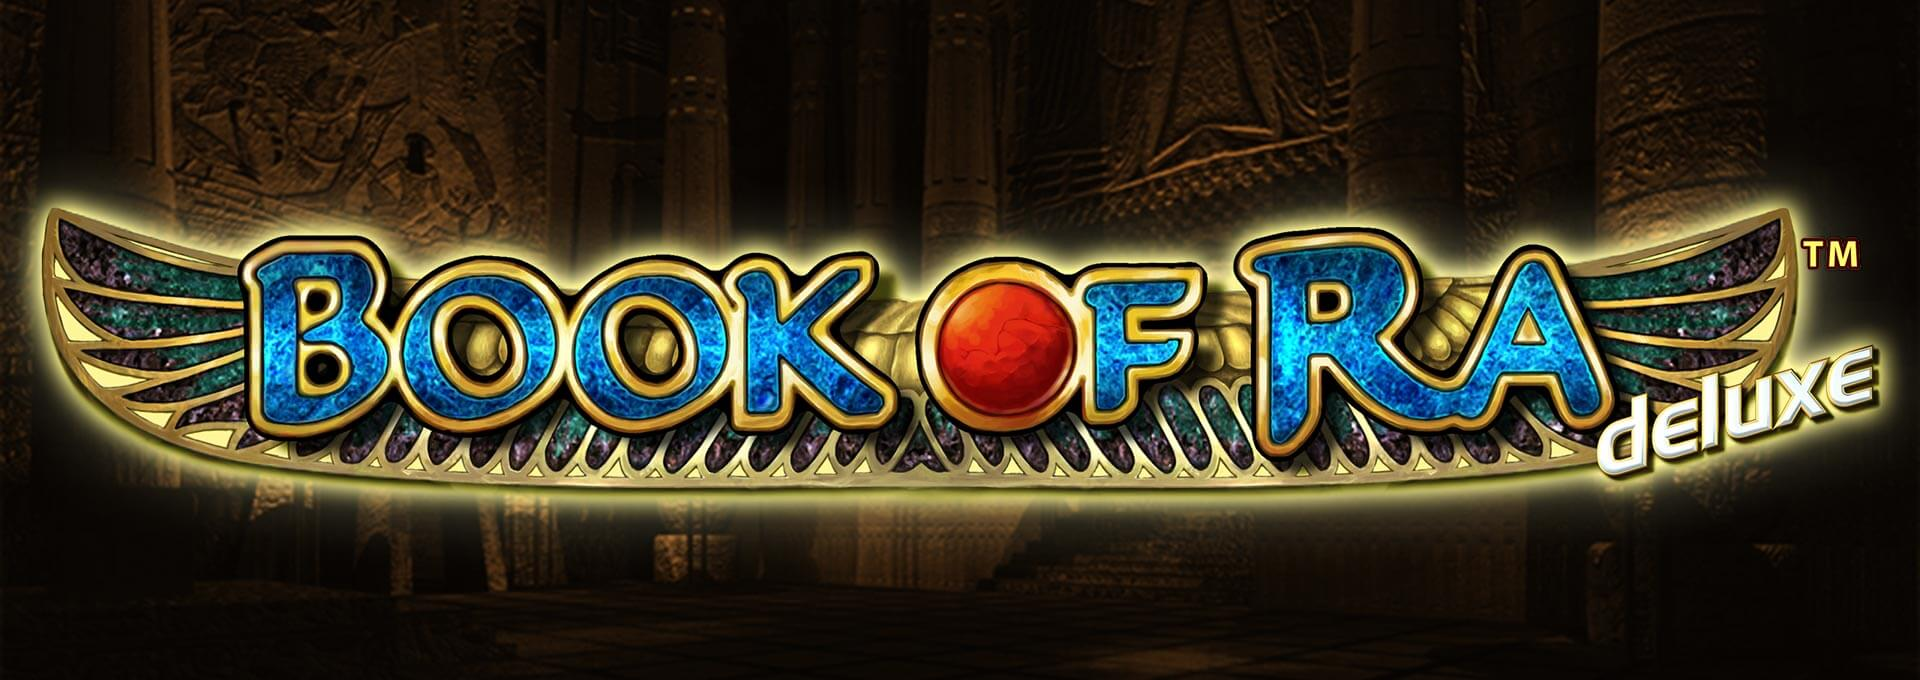 online casino no deposit book of ra deluxe slot